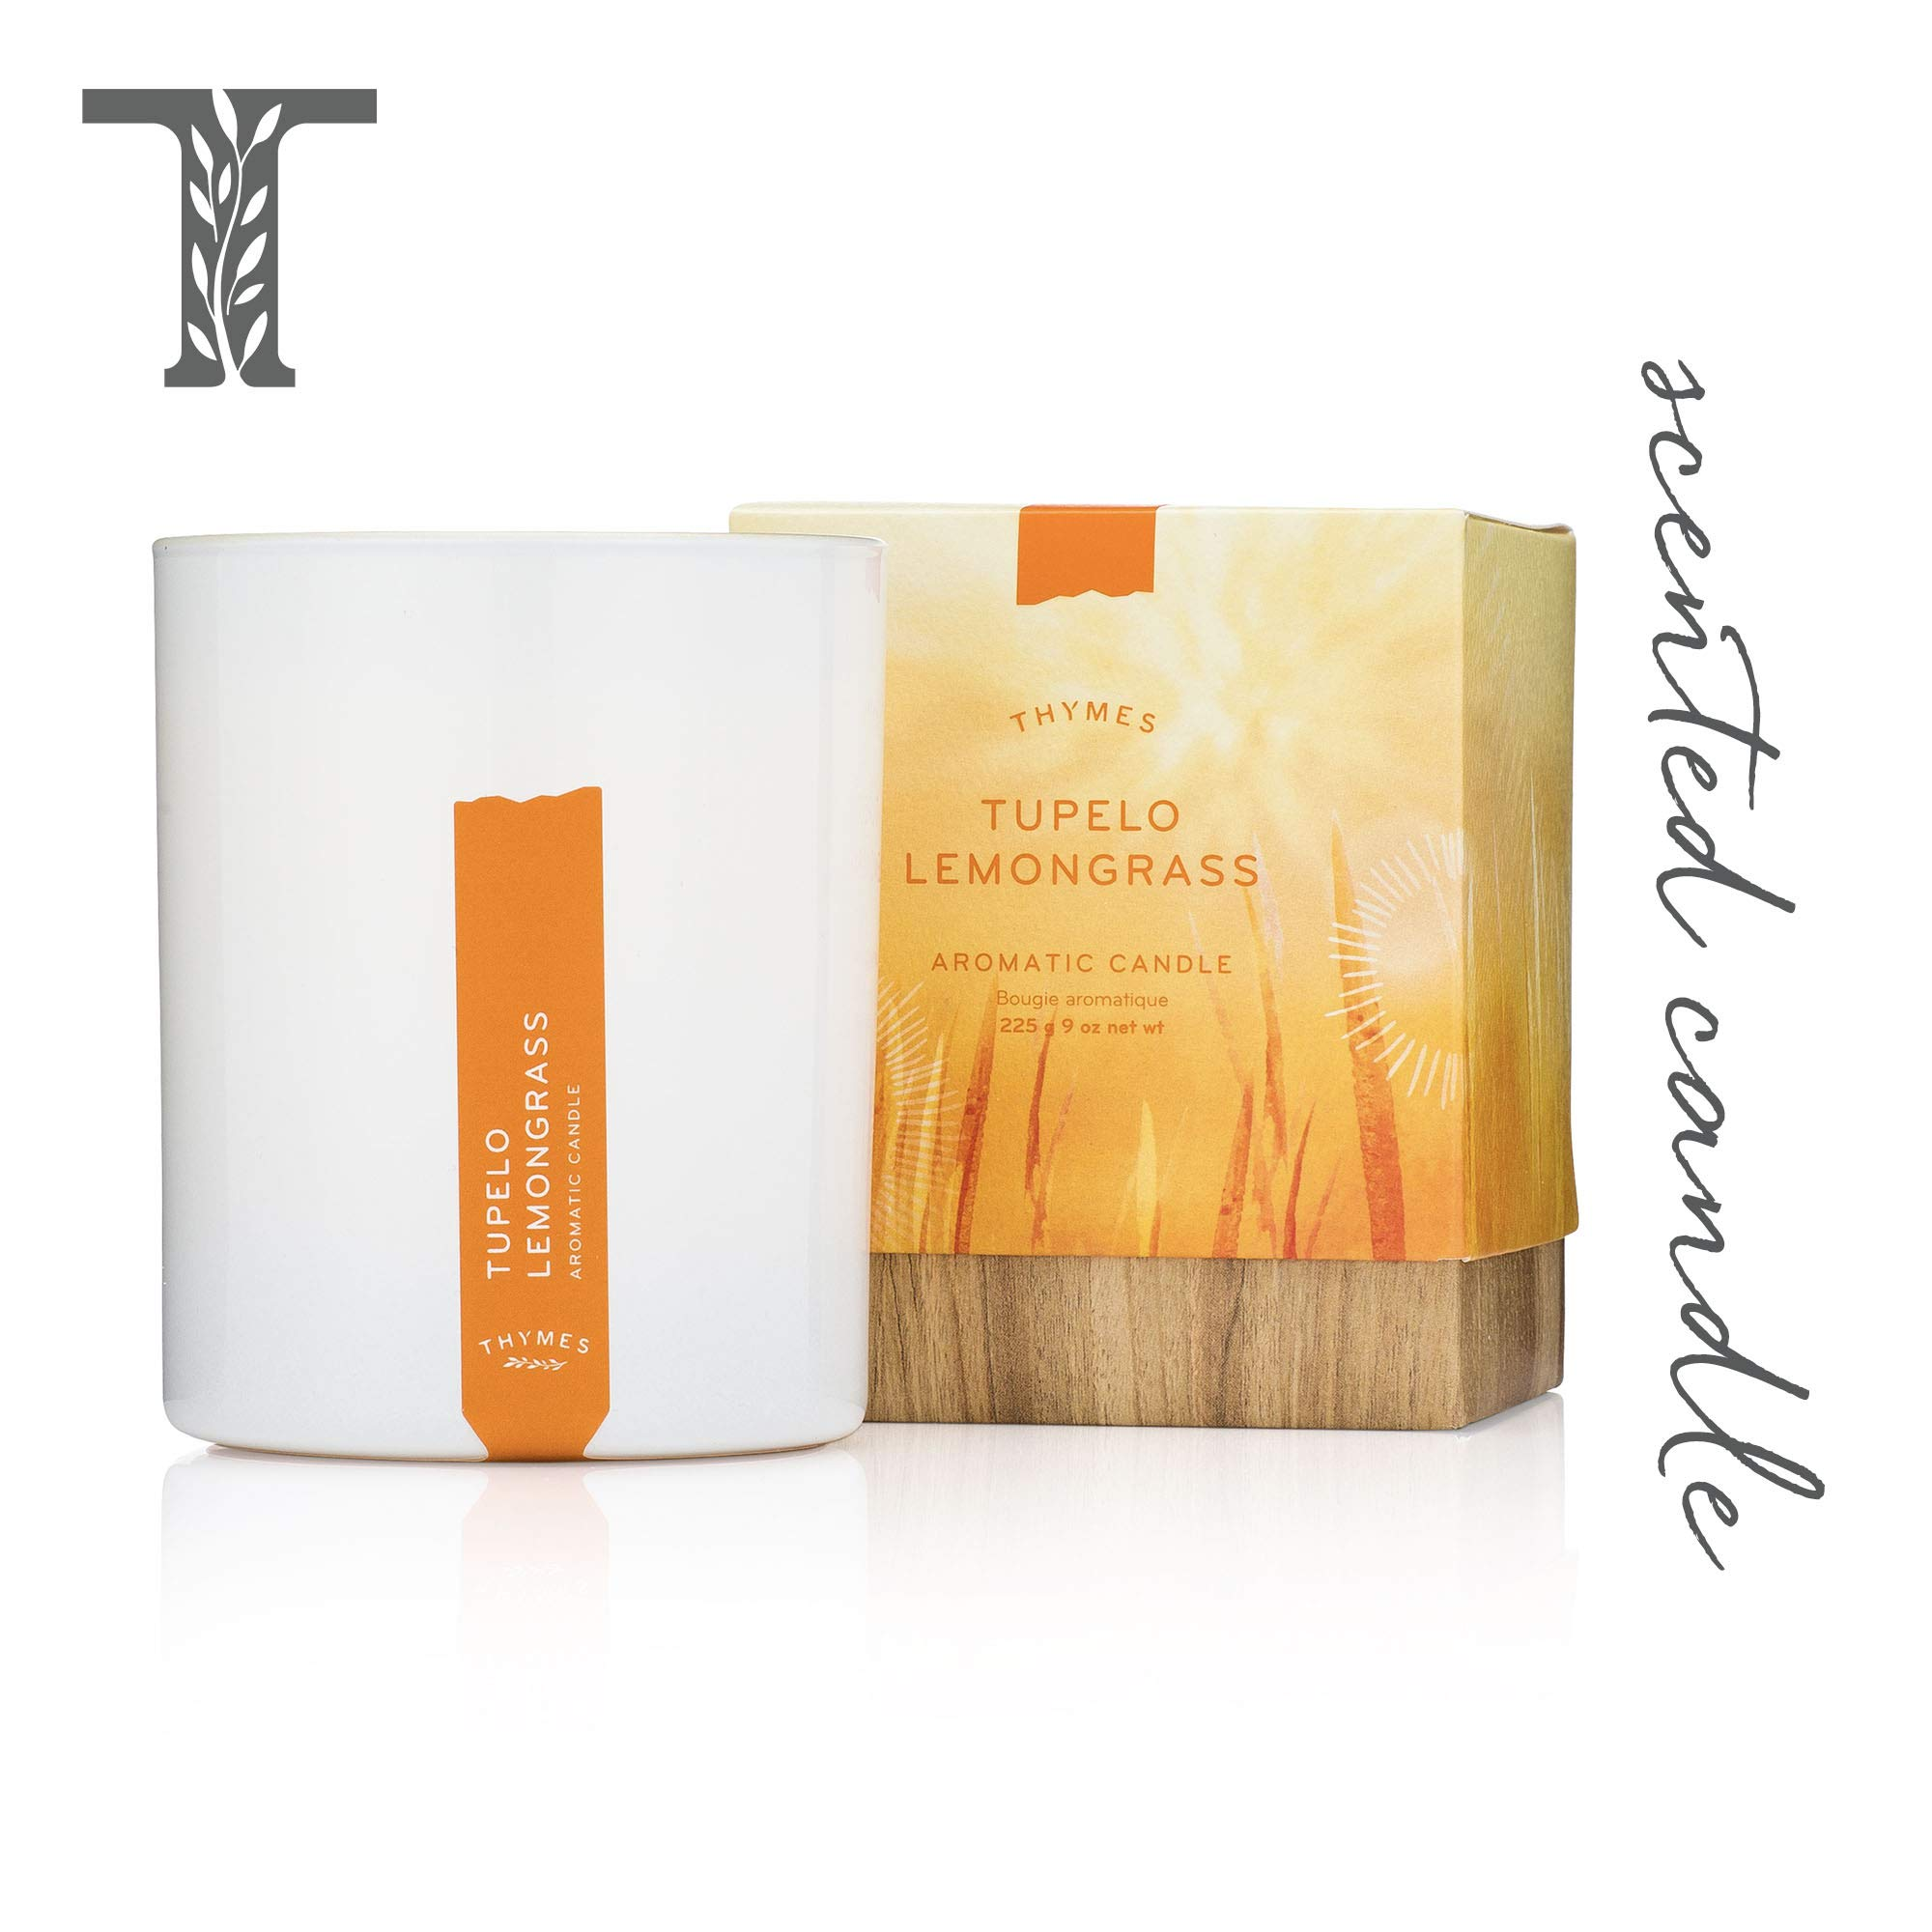 Thymes - Tupelo Lemongrass Aromatic Scented Candle - Long Lasting Citrus Scent with Gift Box - 9 oz